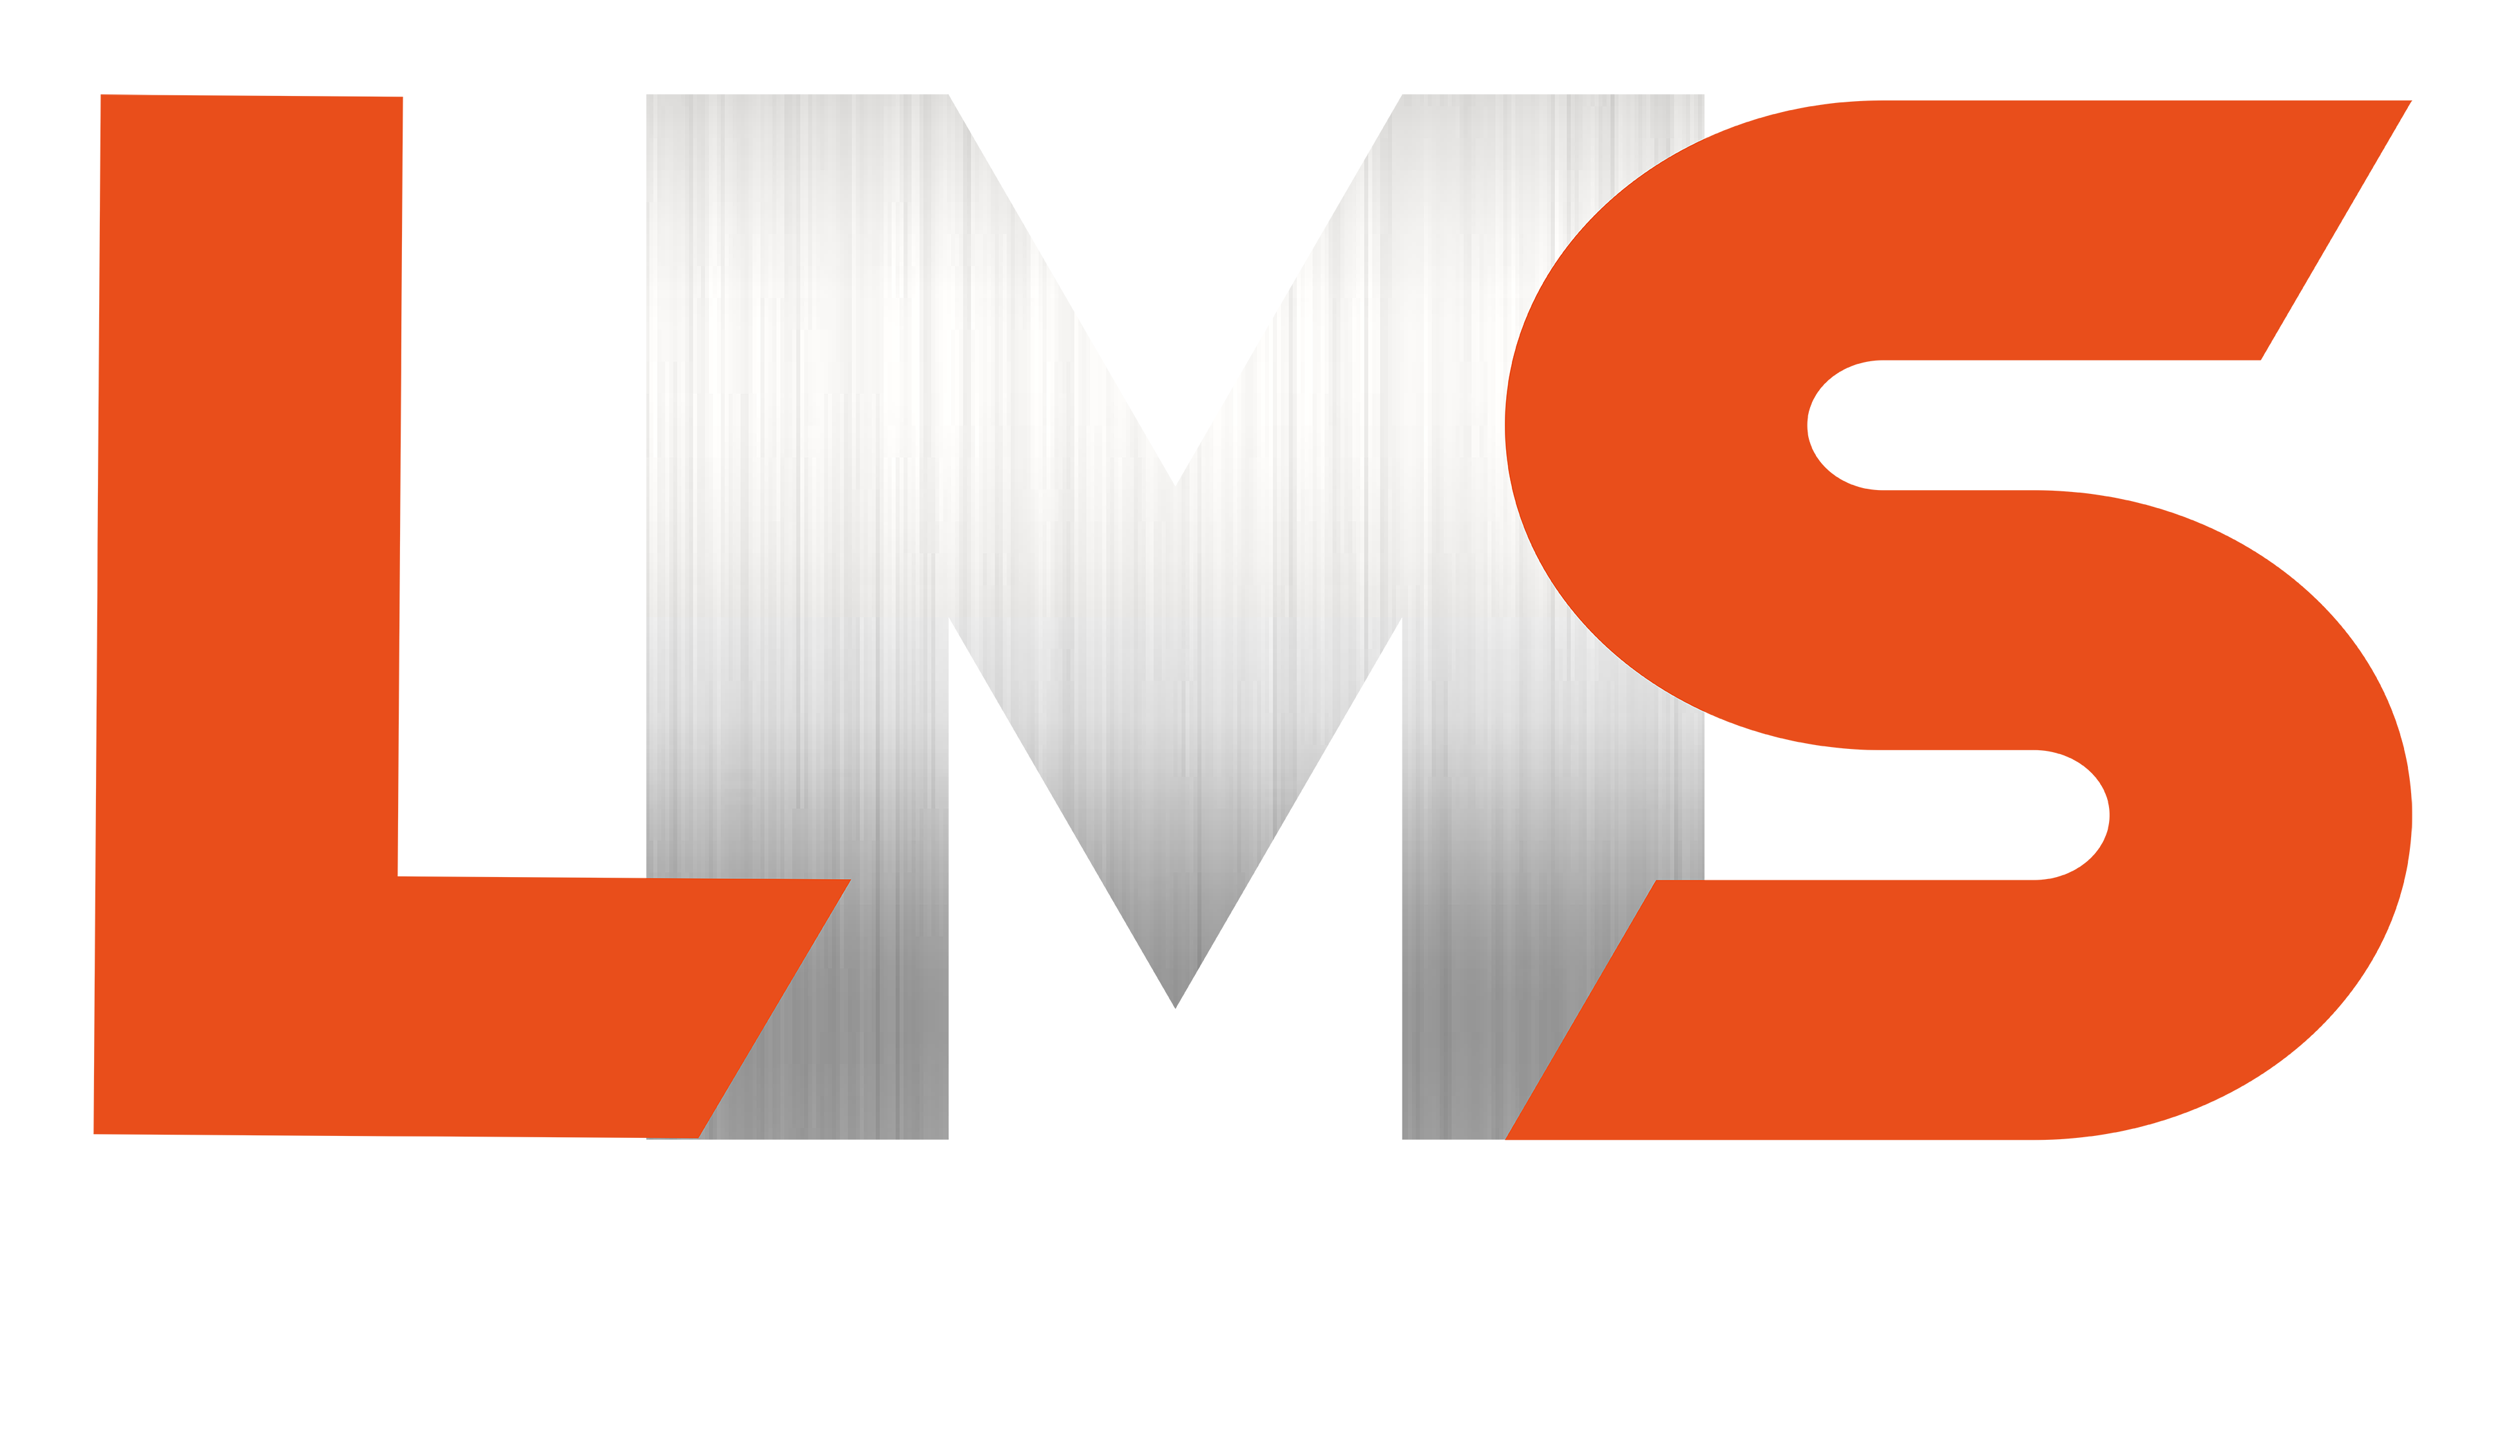 Linear Motion Systems Ltd